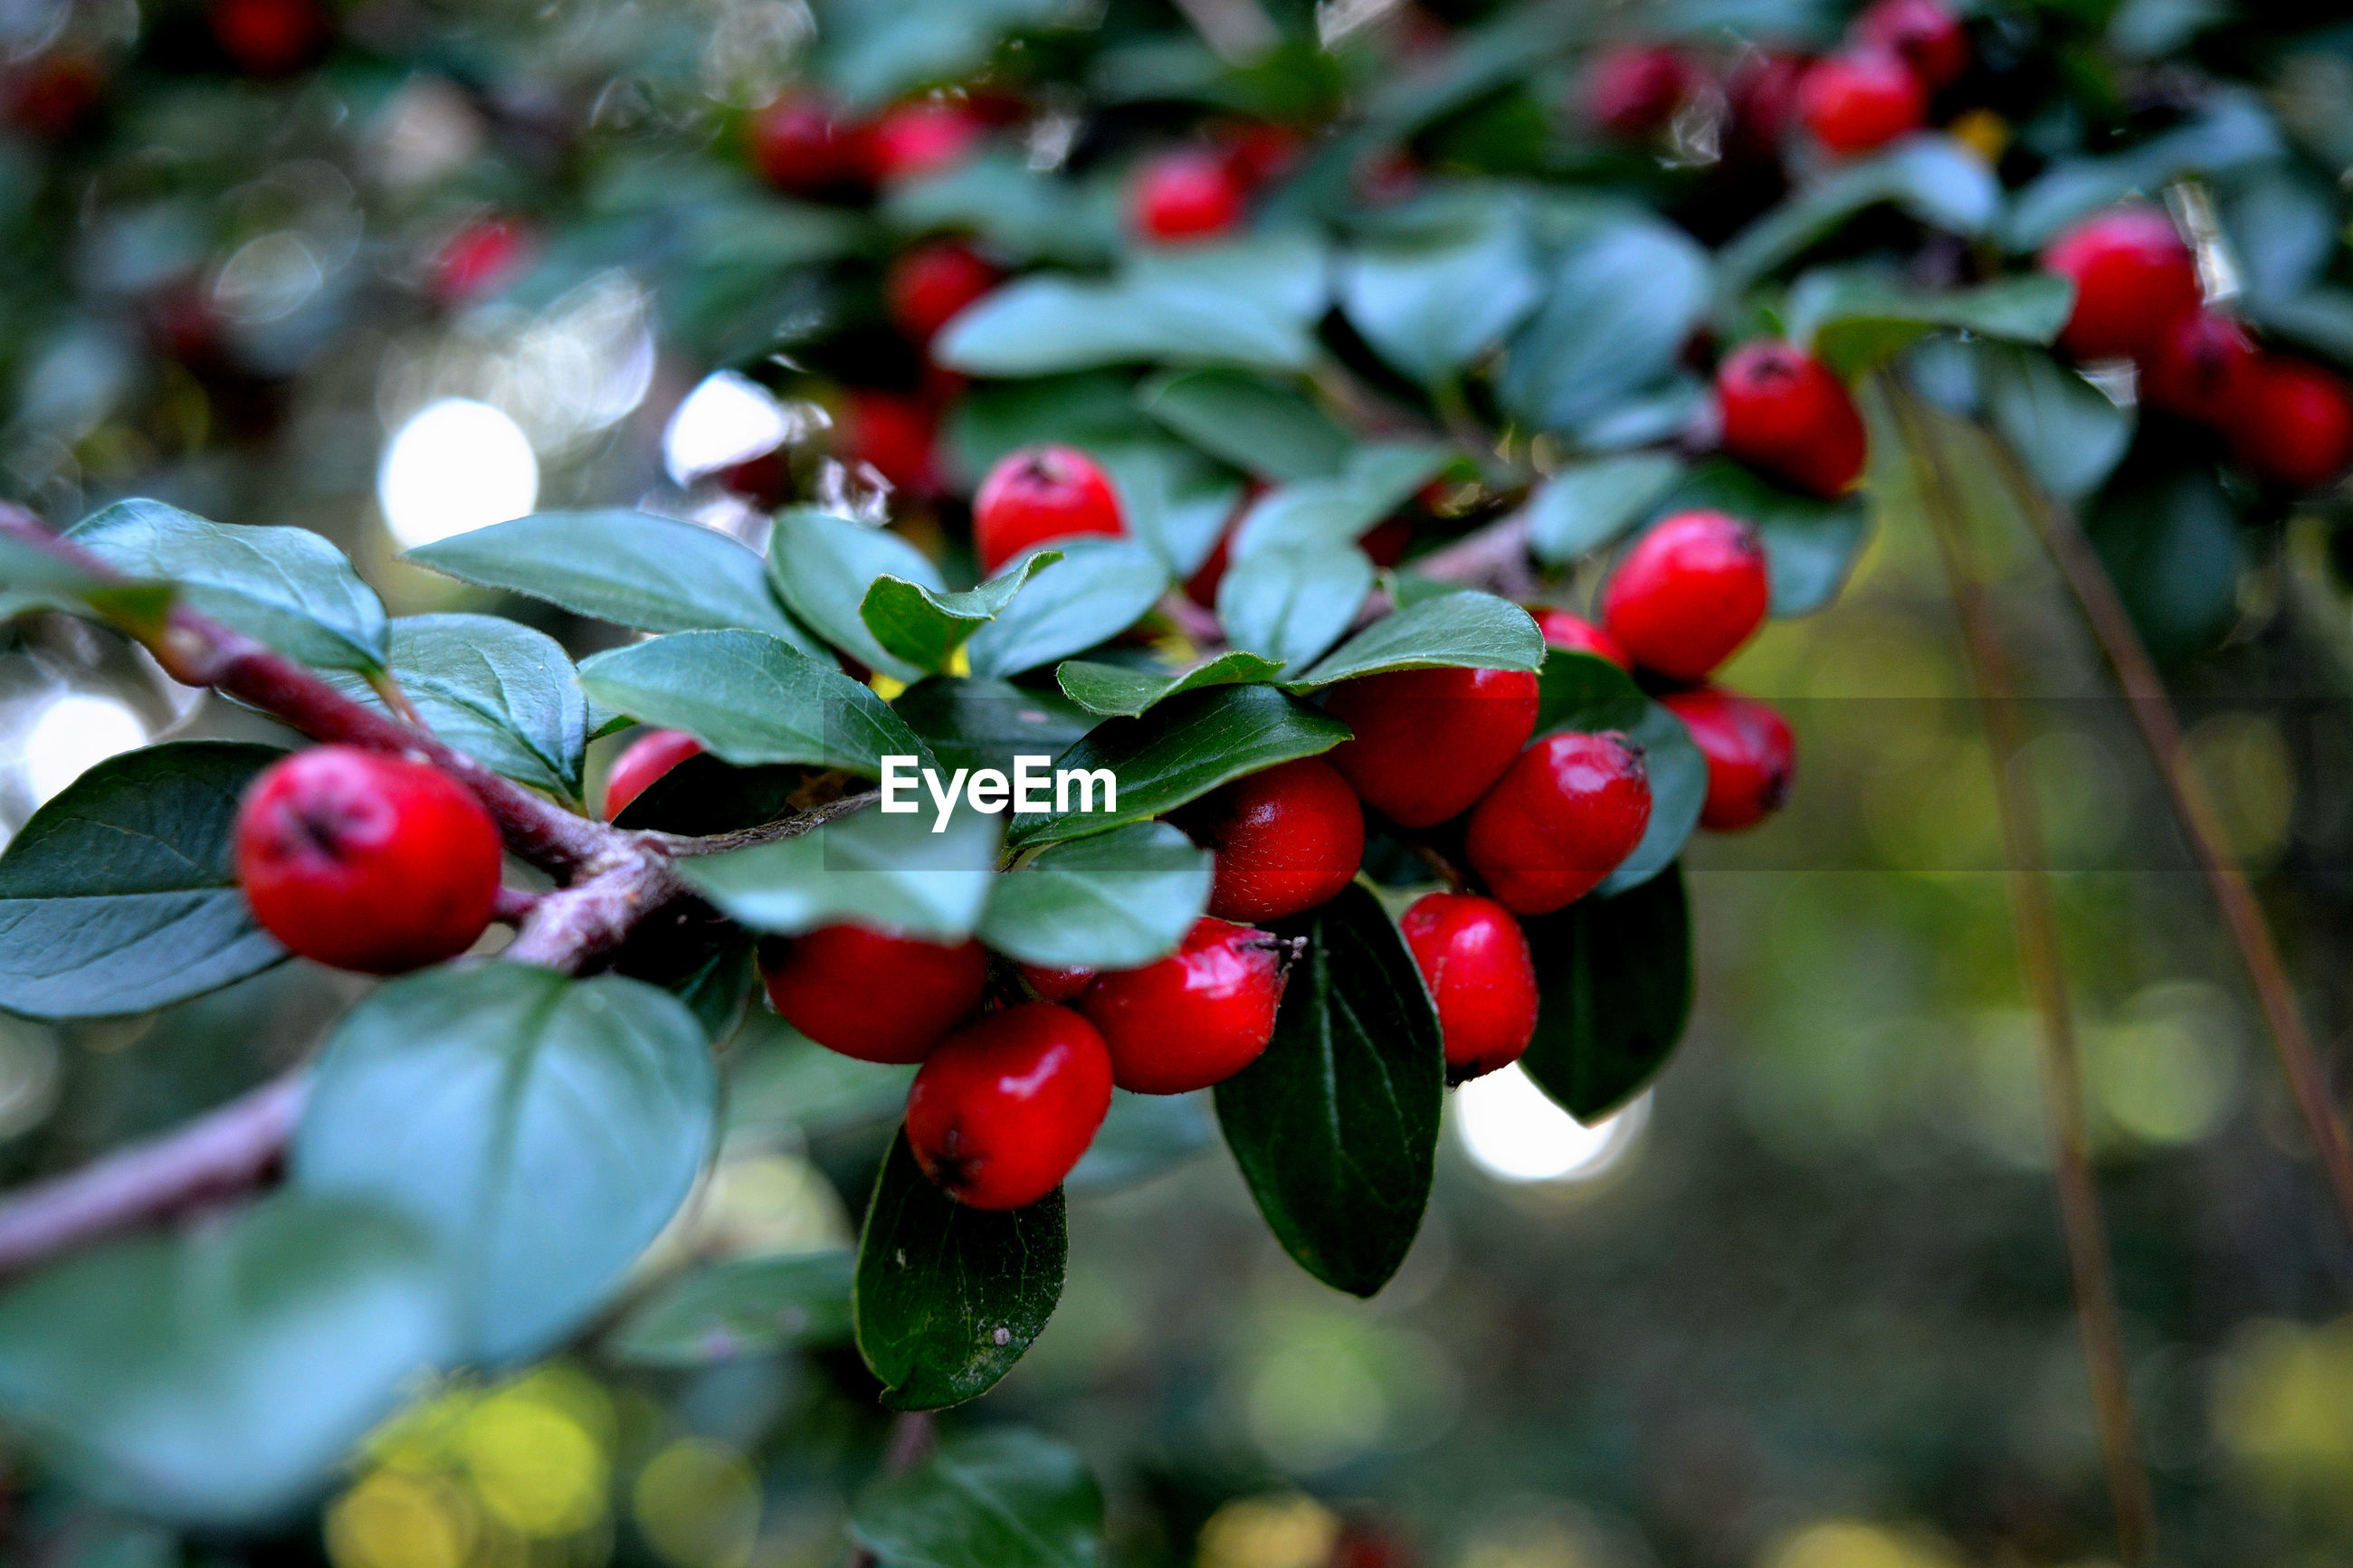 fruit, red, growth, close-up, nature, freshness, food and drink, food, no people, tree, healthy eating, day, outdoors, beauty in nature, rose hip